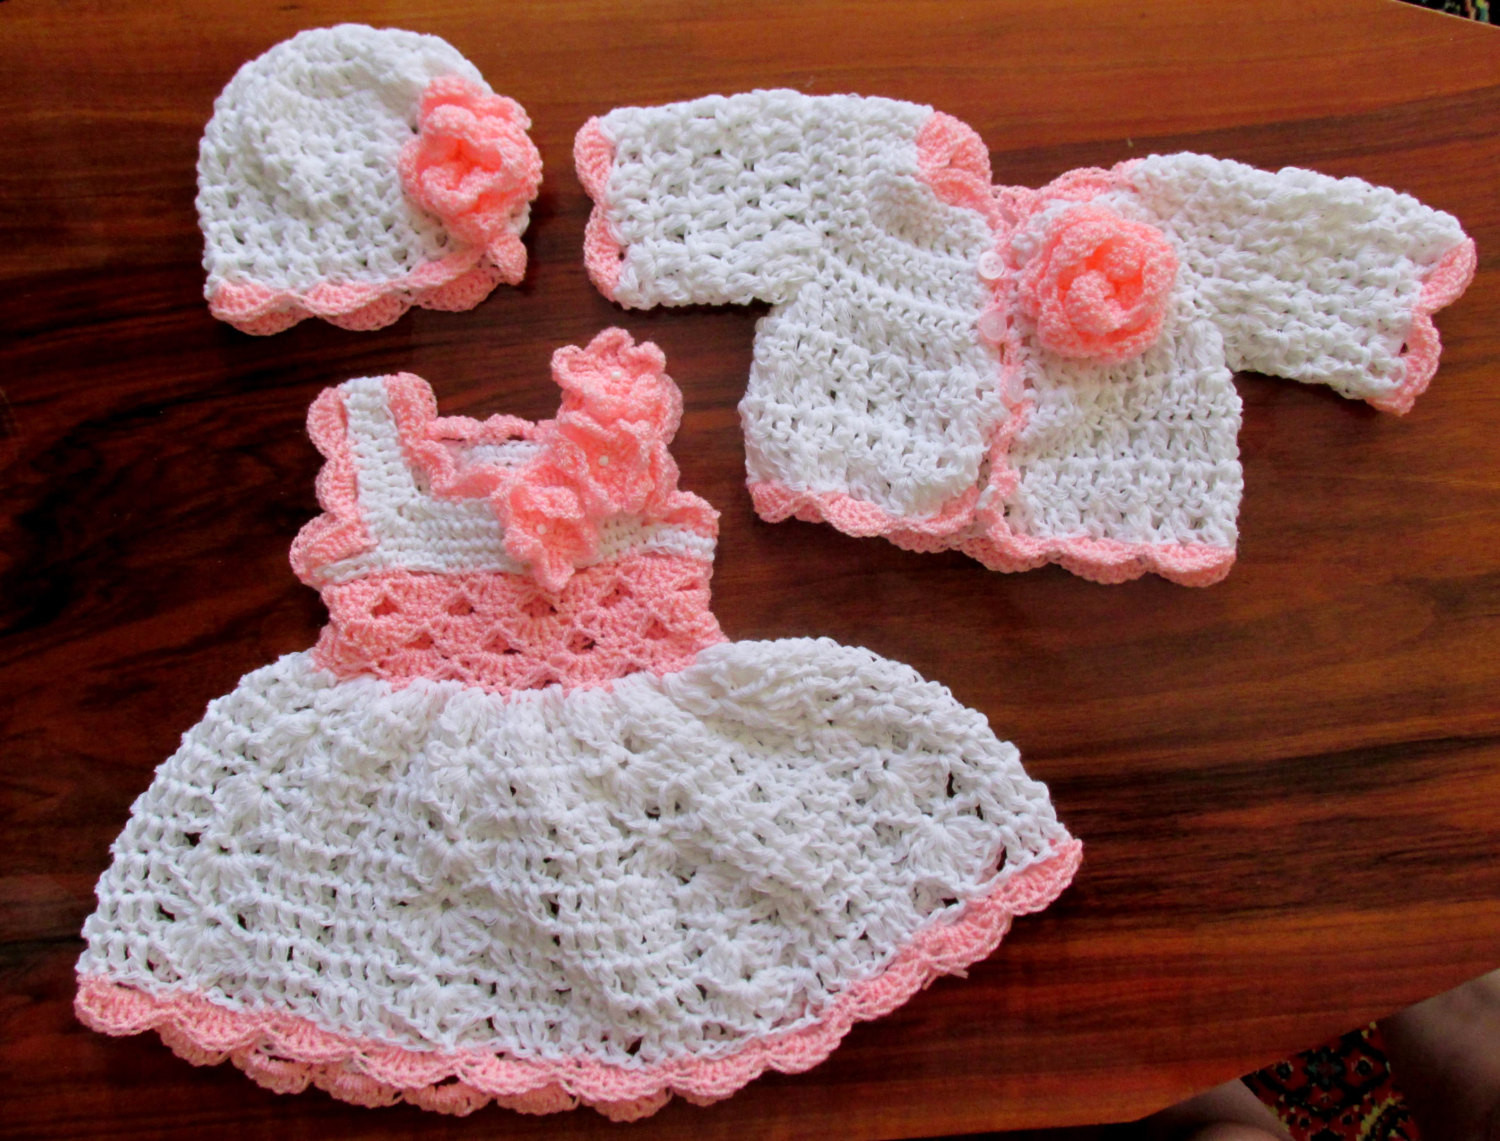 baby girl outfit crochet baby outfit white baby cardigan